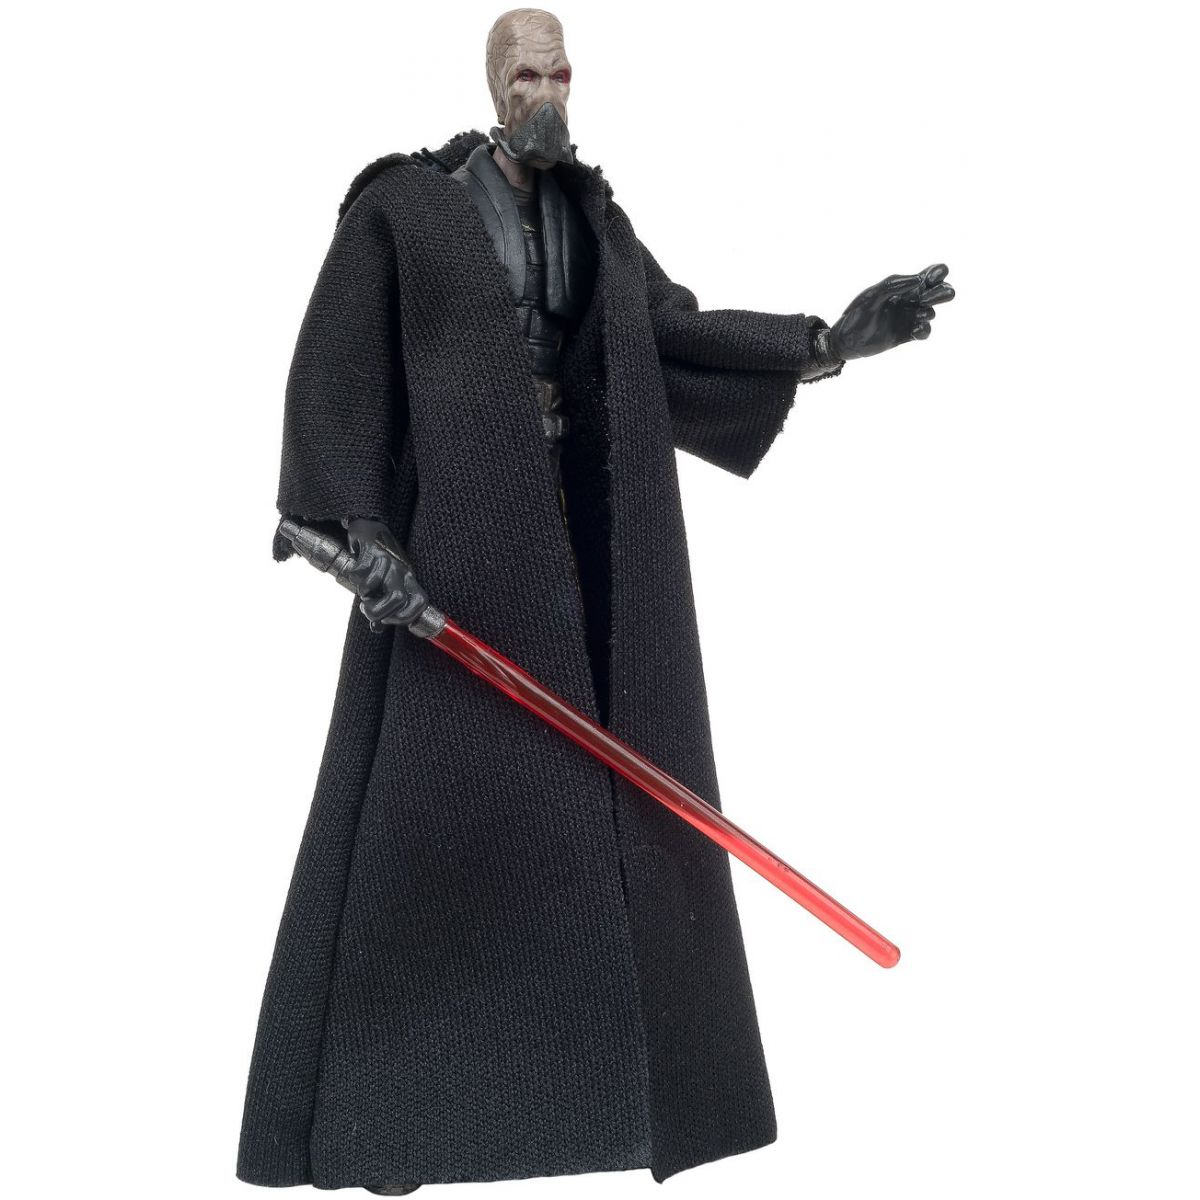 Hasbro Star Wars The Black Series - Darth Plagueis